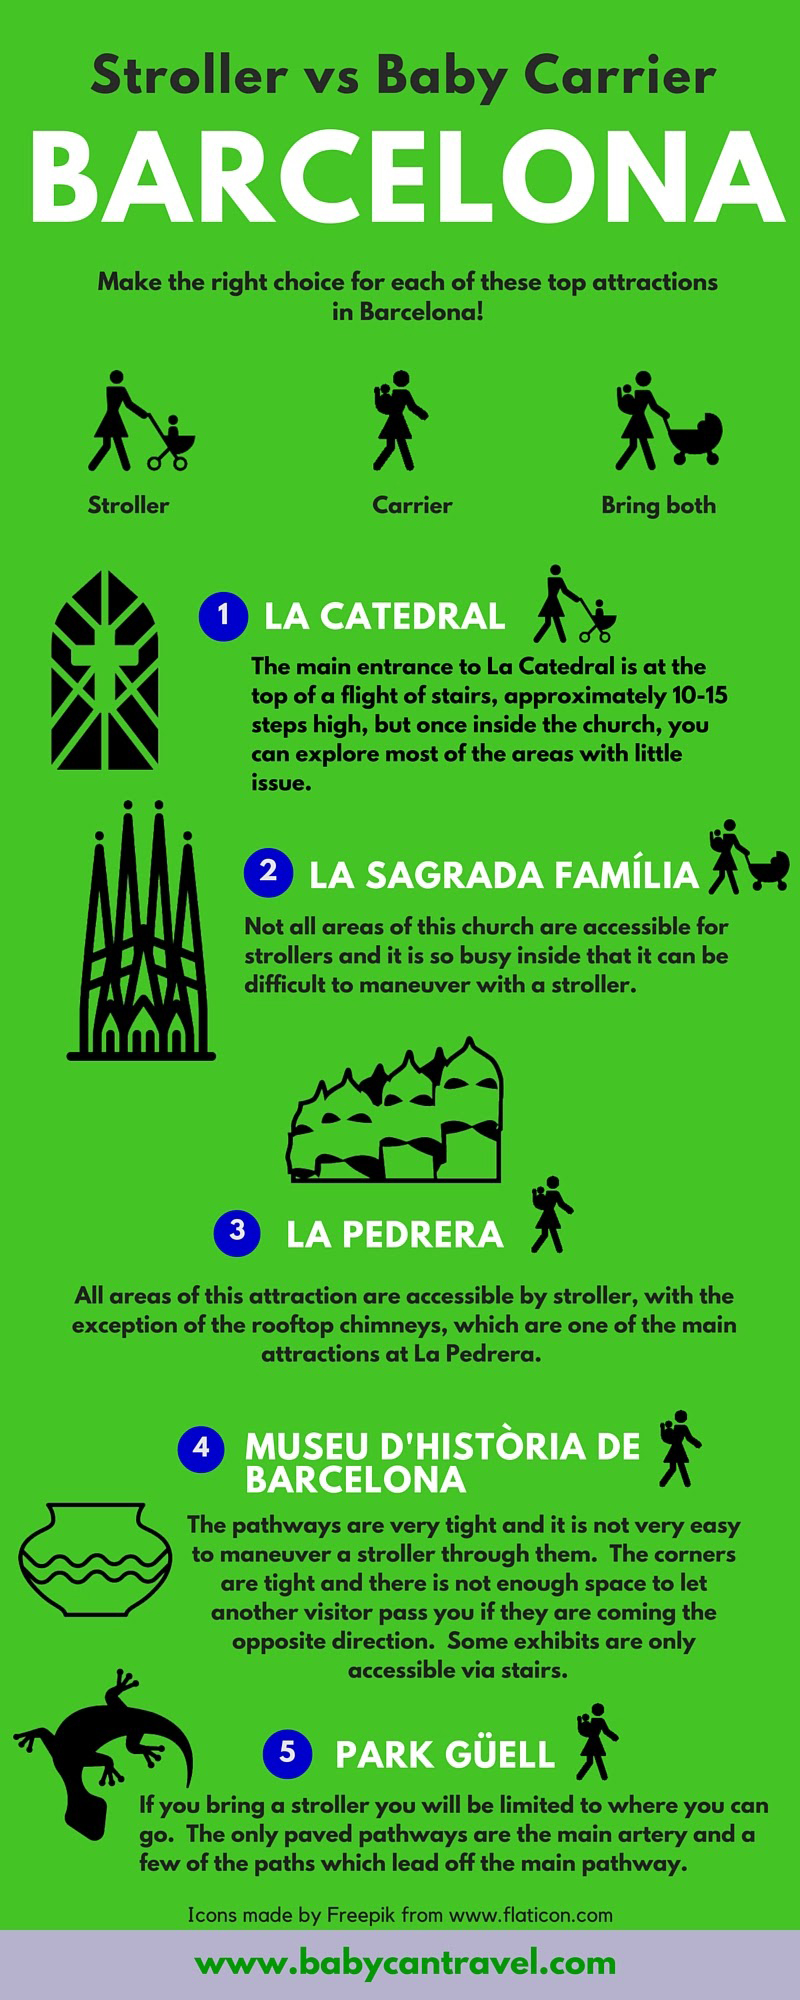 Here's a list of what to use where in Barcelona with a baby! Some sights are best seen with a stroller and some with a baby carrier. #barcelona #travelwithbaby #stroller #babycarrier #babytravelgear #travelgear #baby #toddlertravel #familytravel #spain